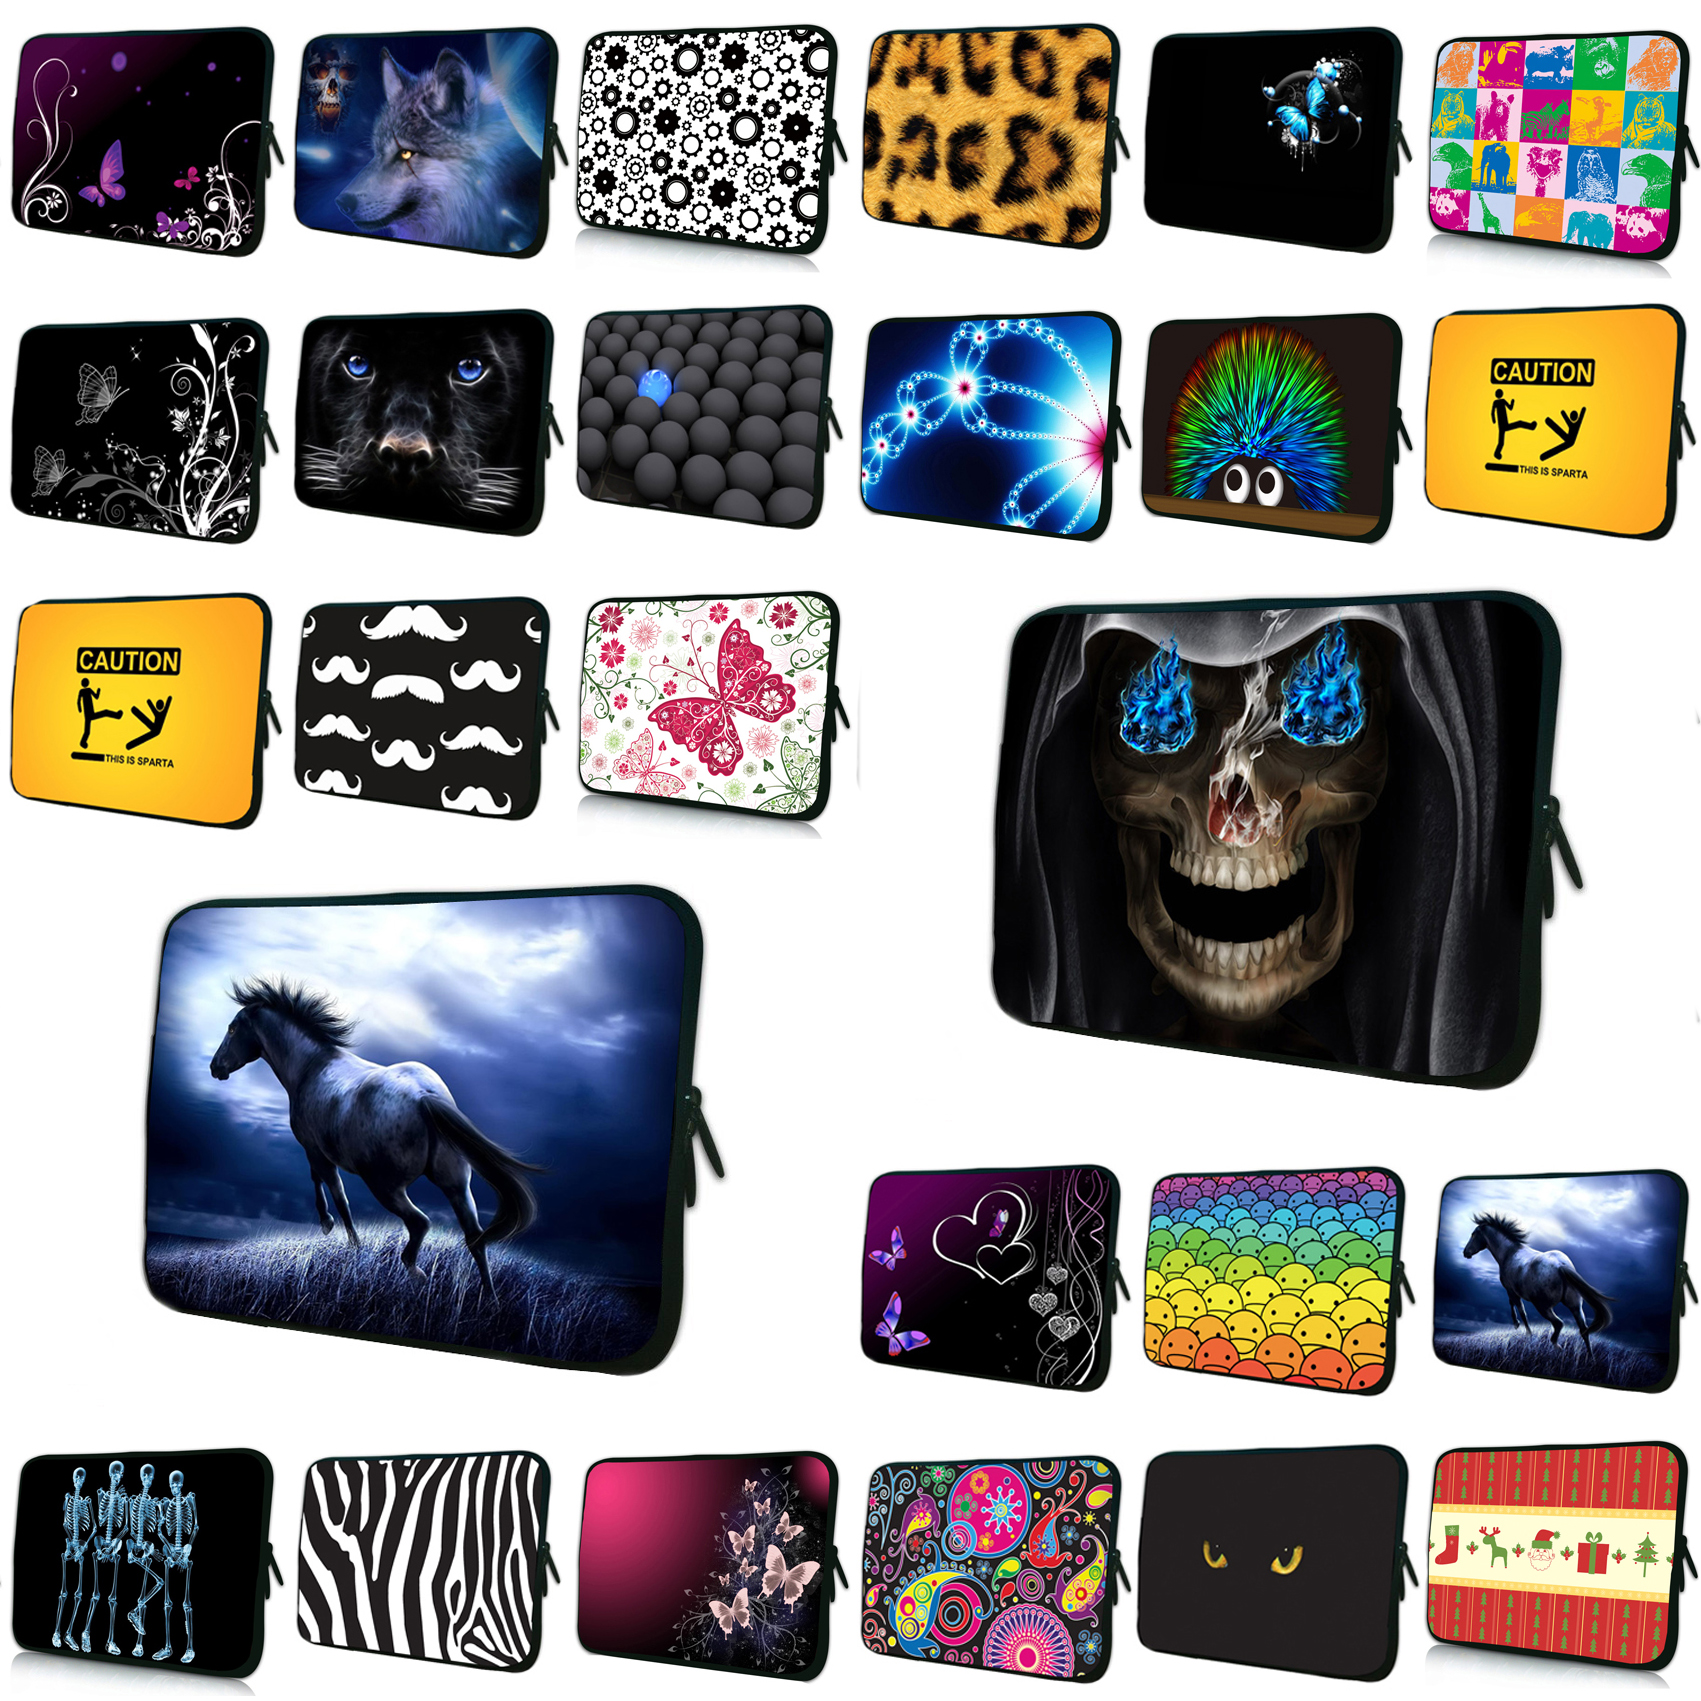 Tablet 10.1 Netbook Case 7 10 12 13 14 15 17 Men Bag Notebook Laptop Cover Shell Cases For Chuwi Lapbook Air 14.1 Macbook Pro 13